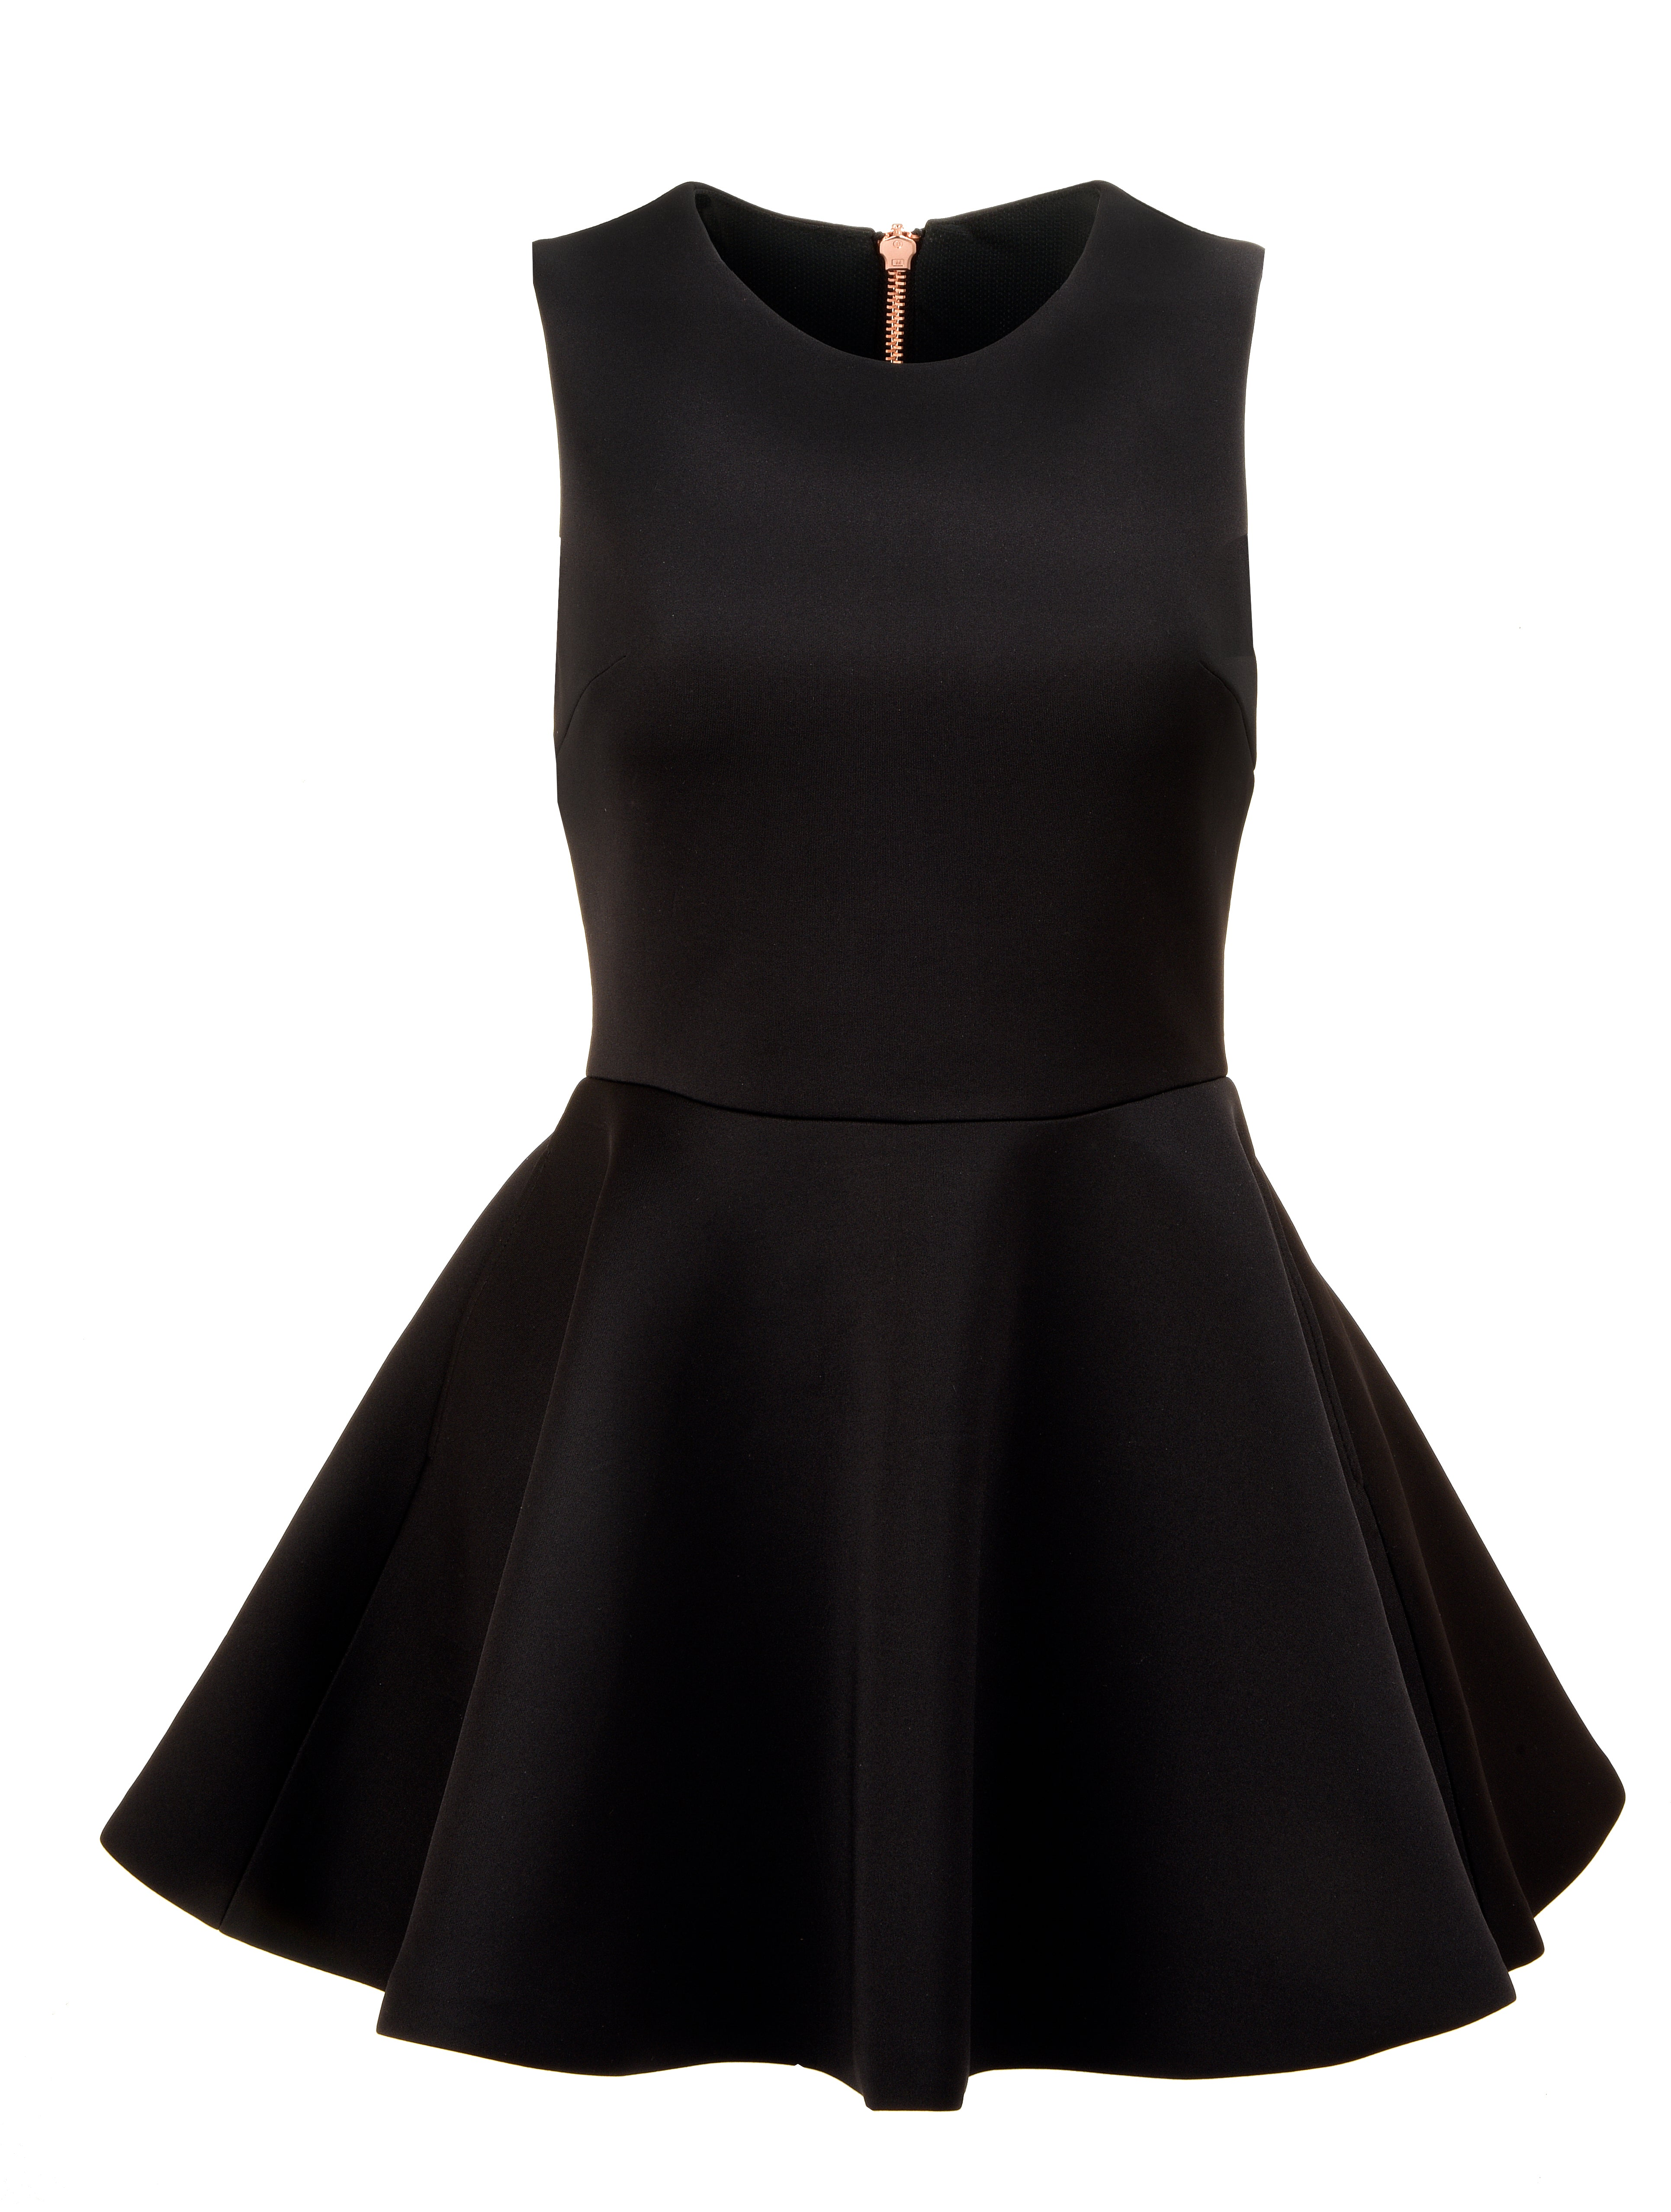 ViSH NYC | Mini Tennis Dress - Rose Gold zipper back - Lead-free zipper